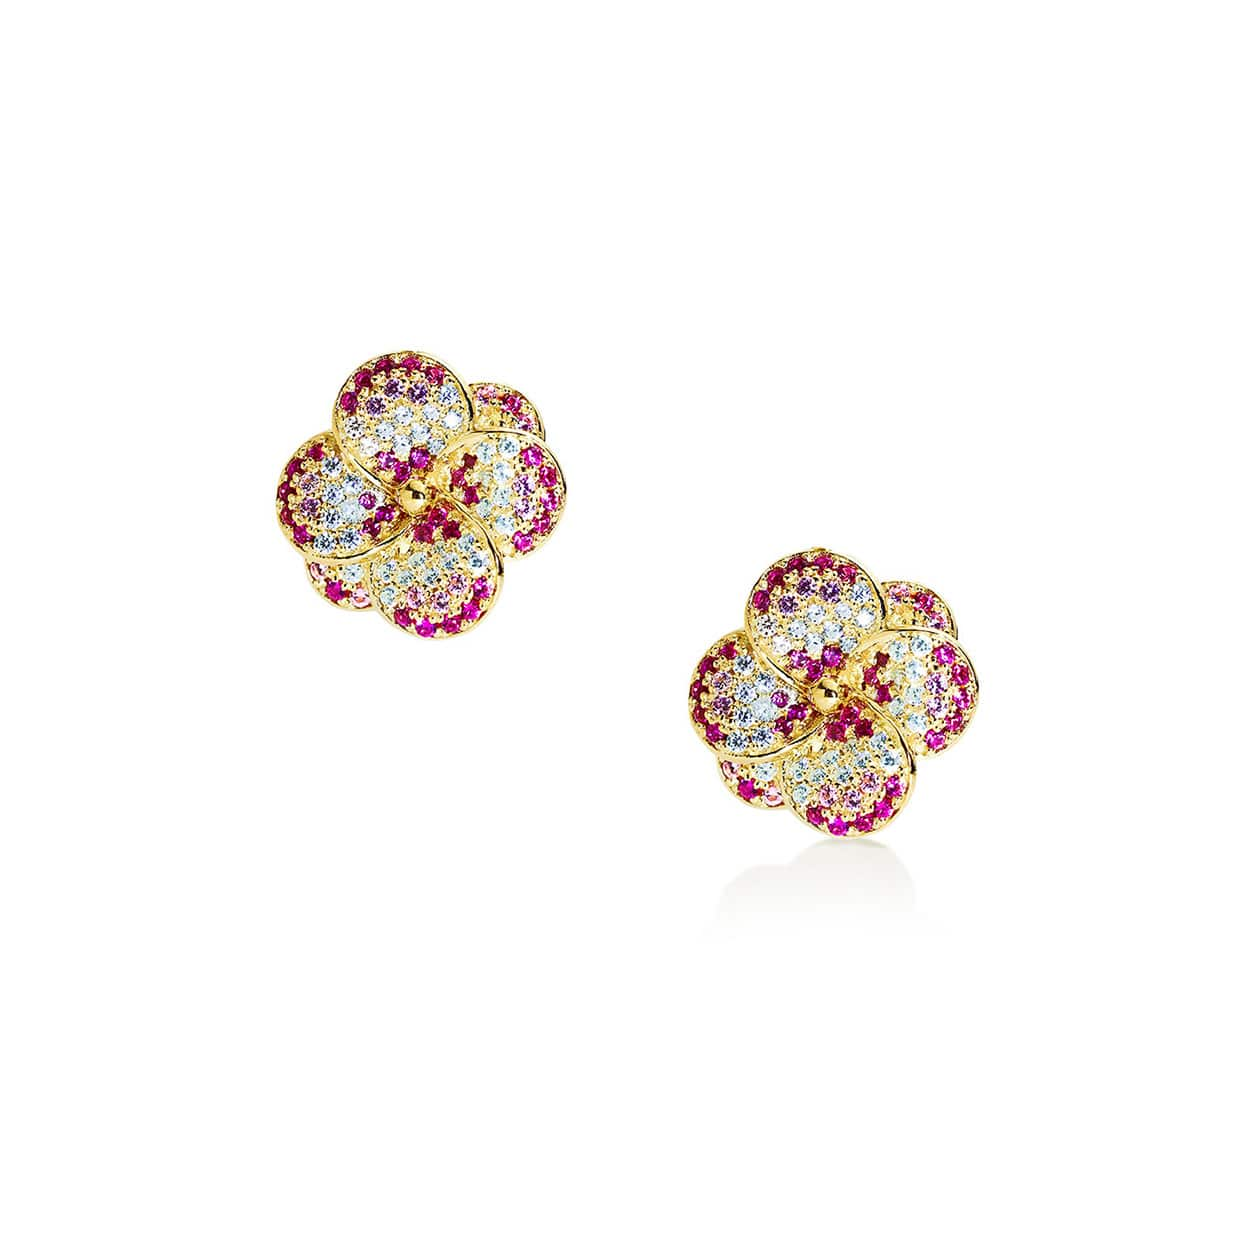 Flora Gold Double Flower Earrings - Abelstedt